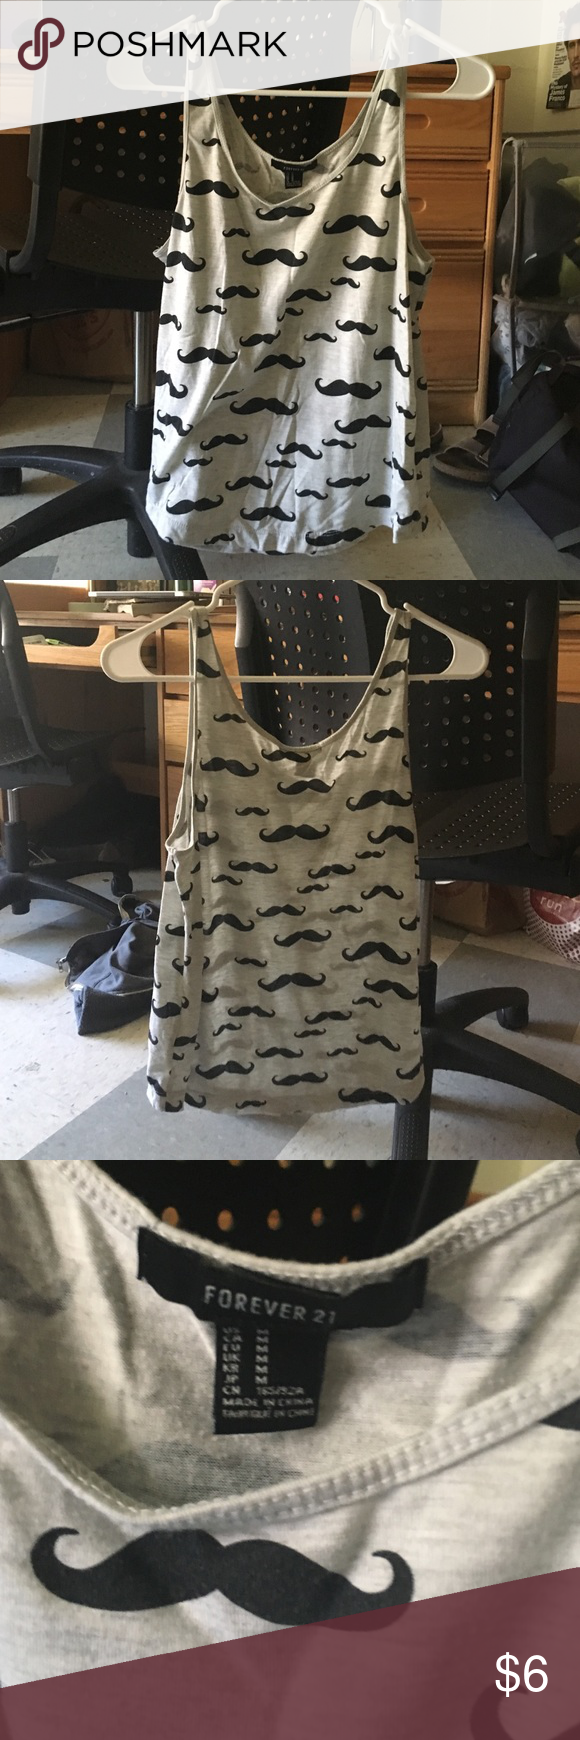 Mustache tank top crop top forever 21 Fun tank top from forever 21 only worn a few times-selling cause it's not my style anymore, price negotiable!! Forever 21 Tops Tank Tops